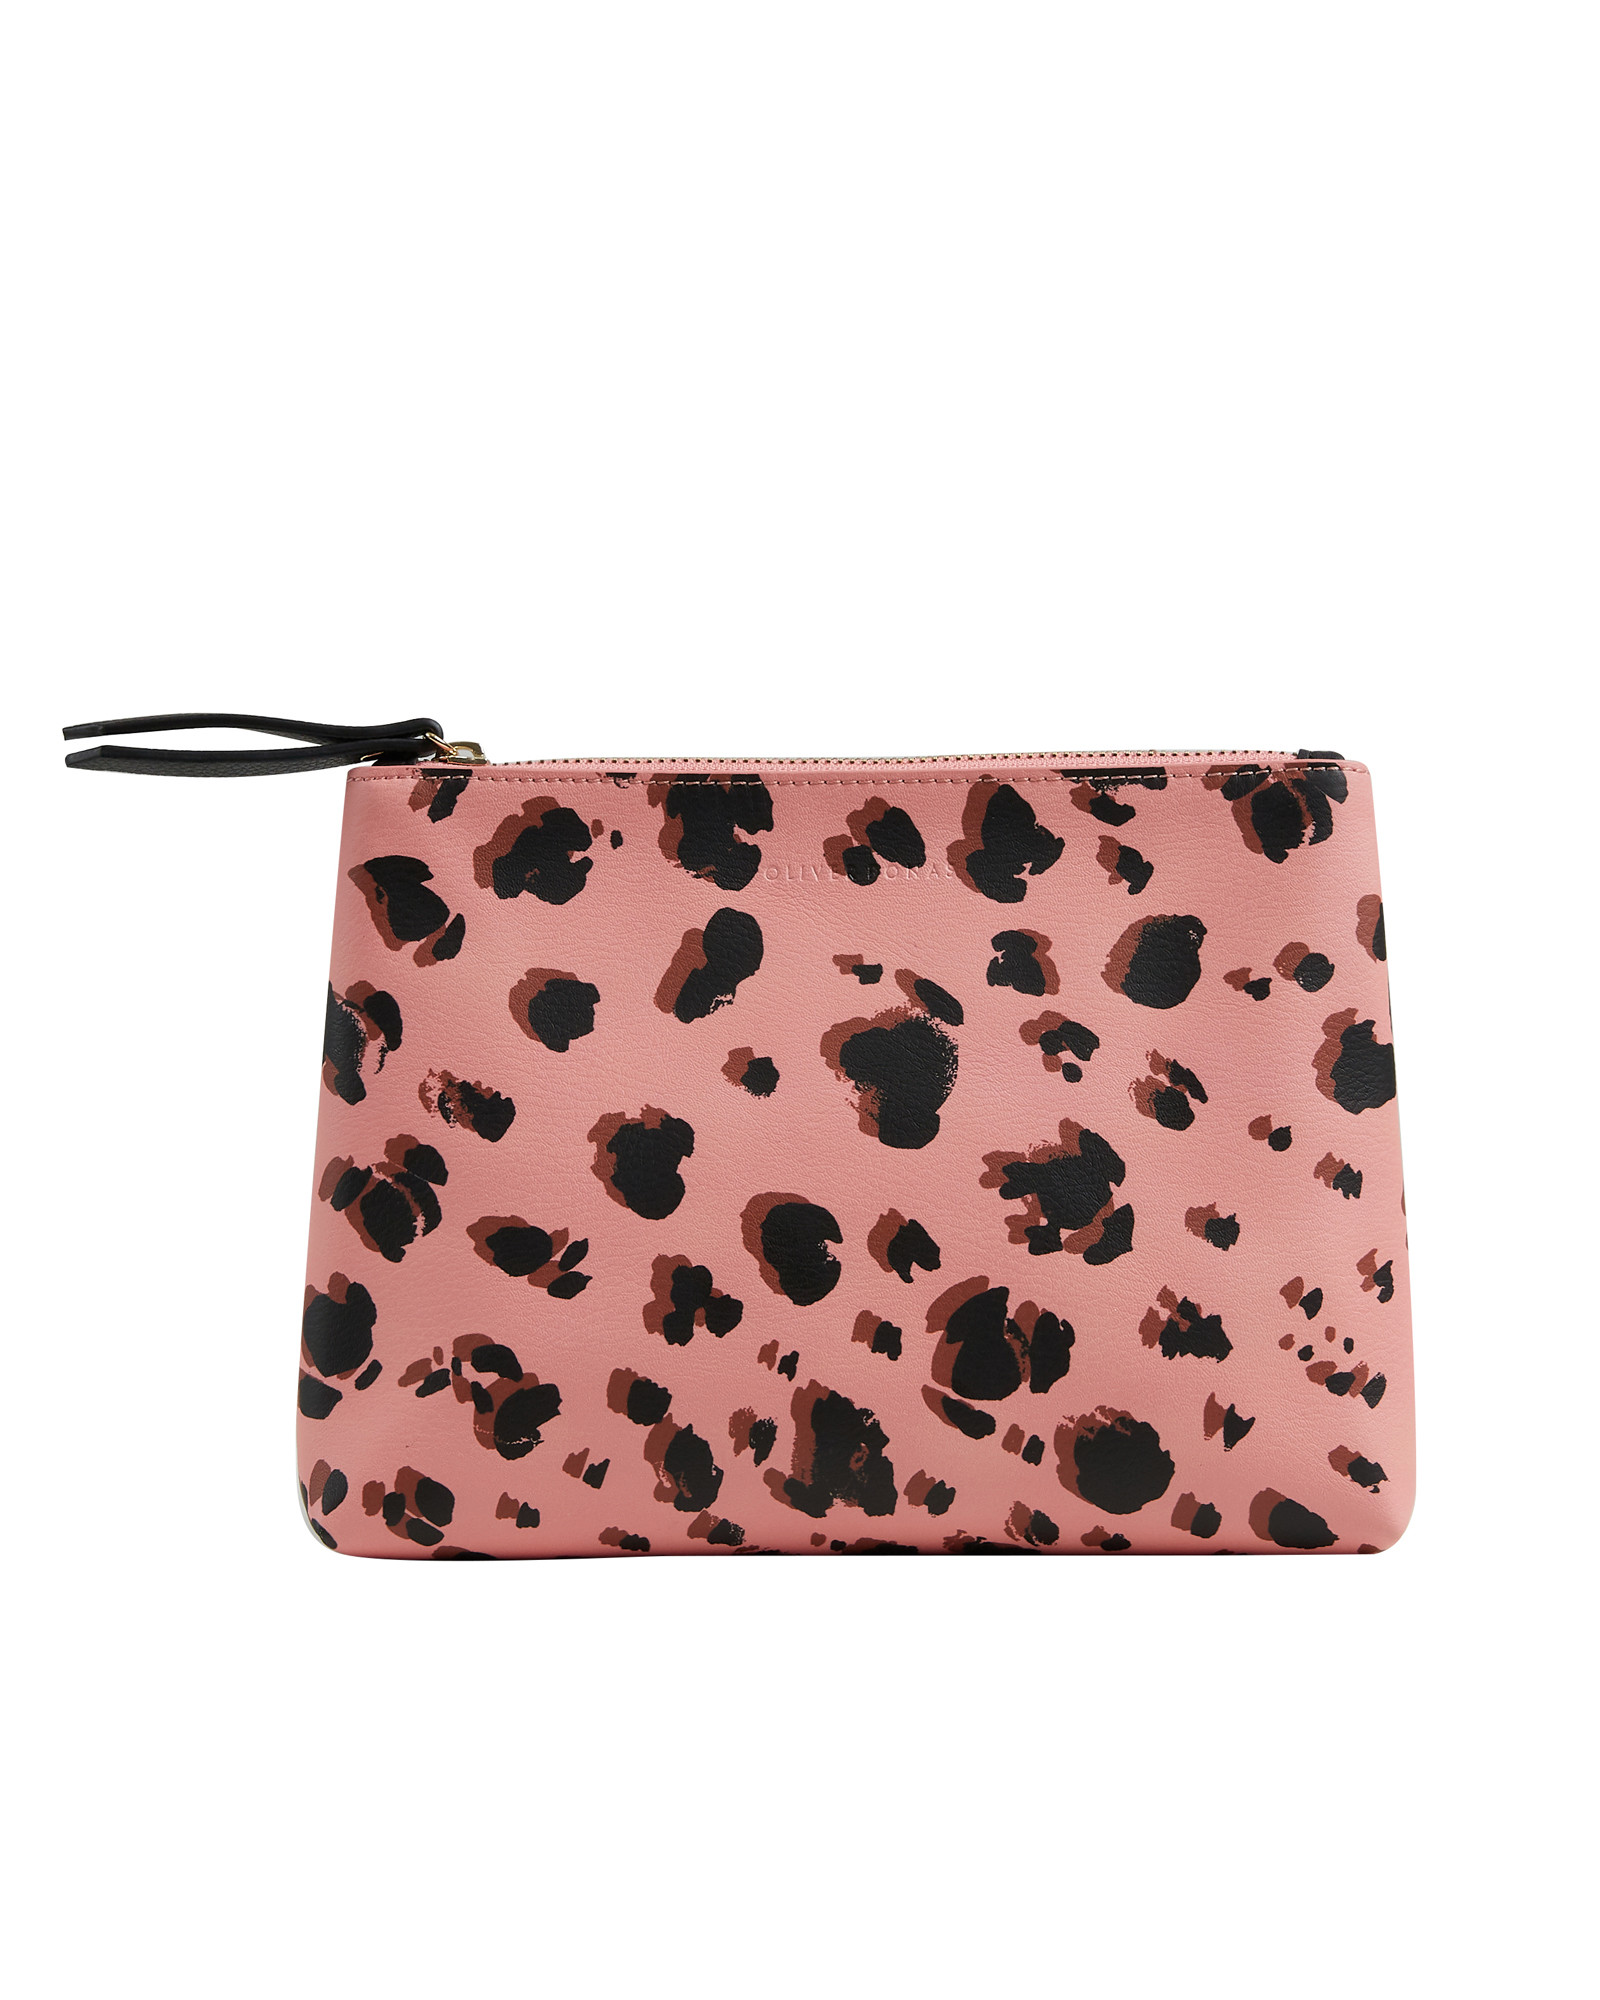 Snow Leopard Pink Zipped Pouch